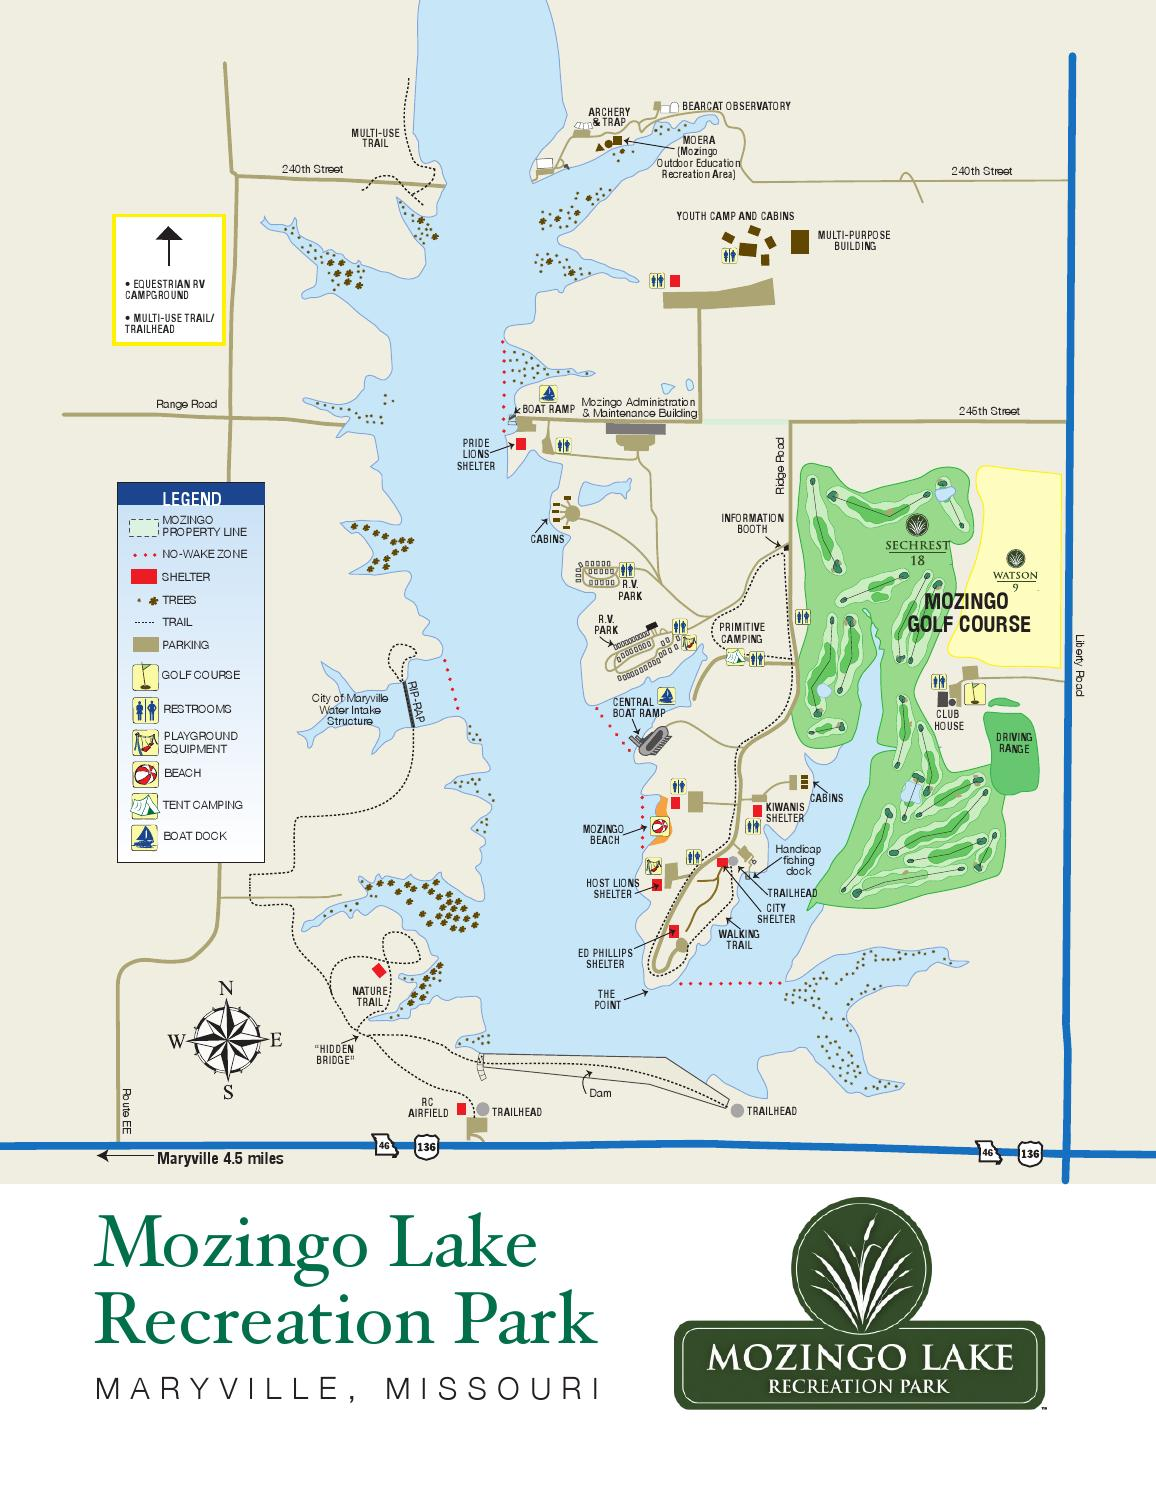 Mozingo Lake Recreation Park Map by Greater Maryville Chamber of